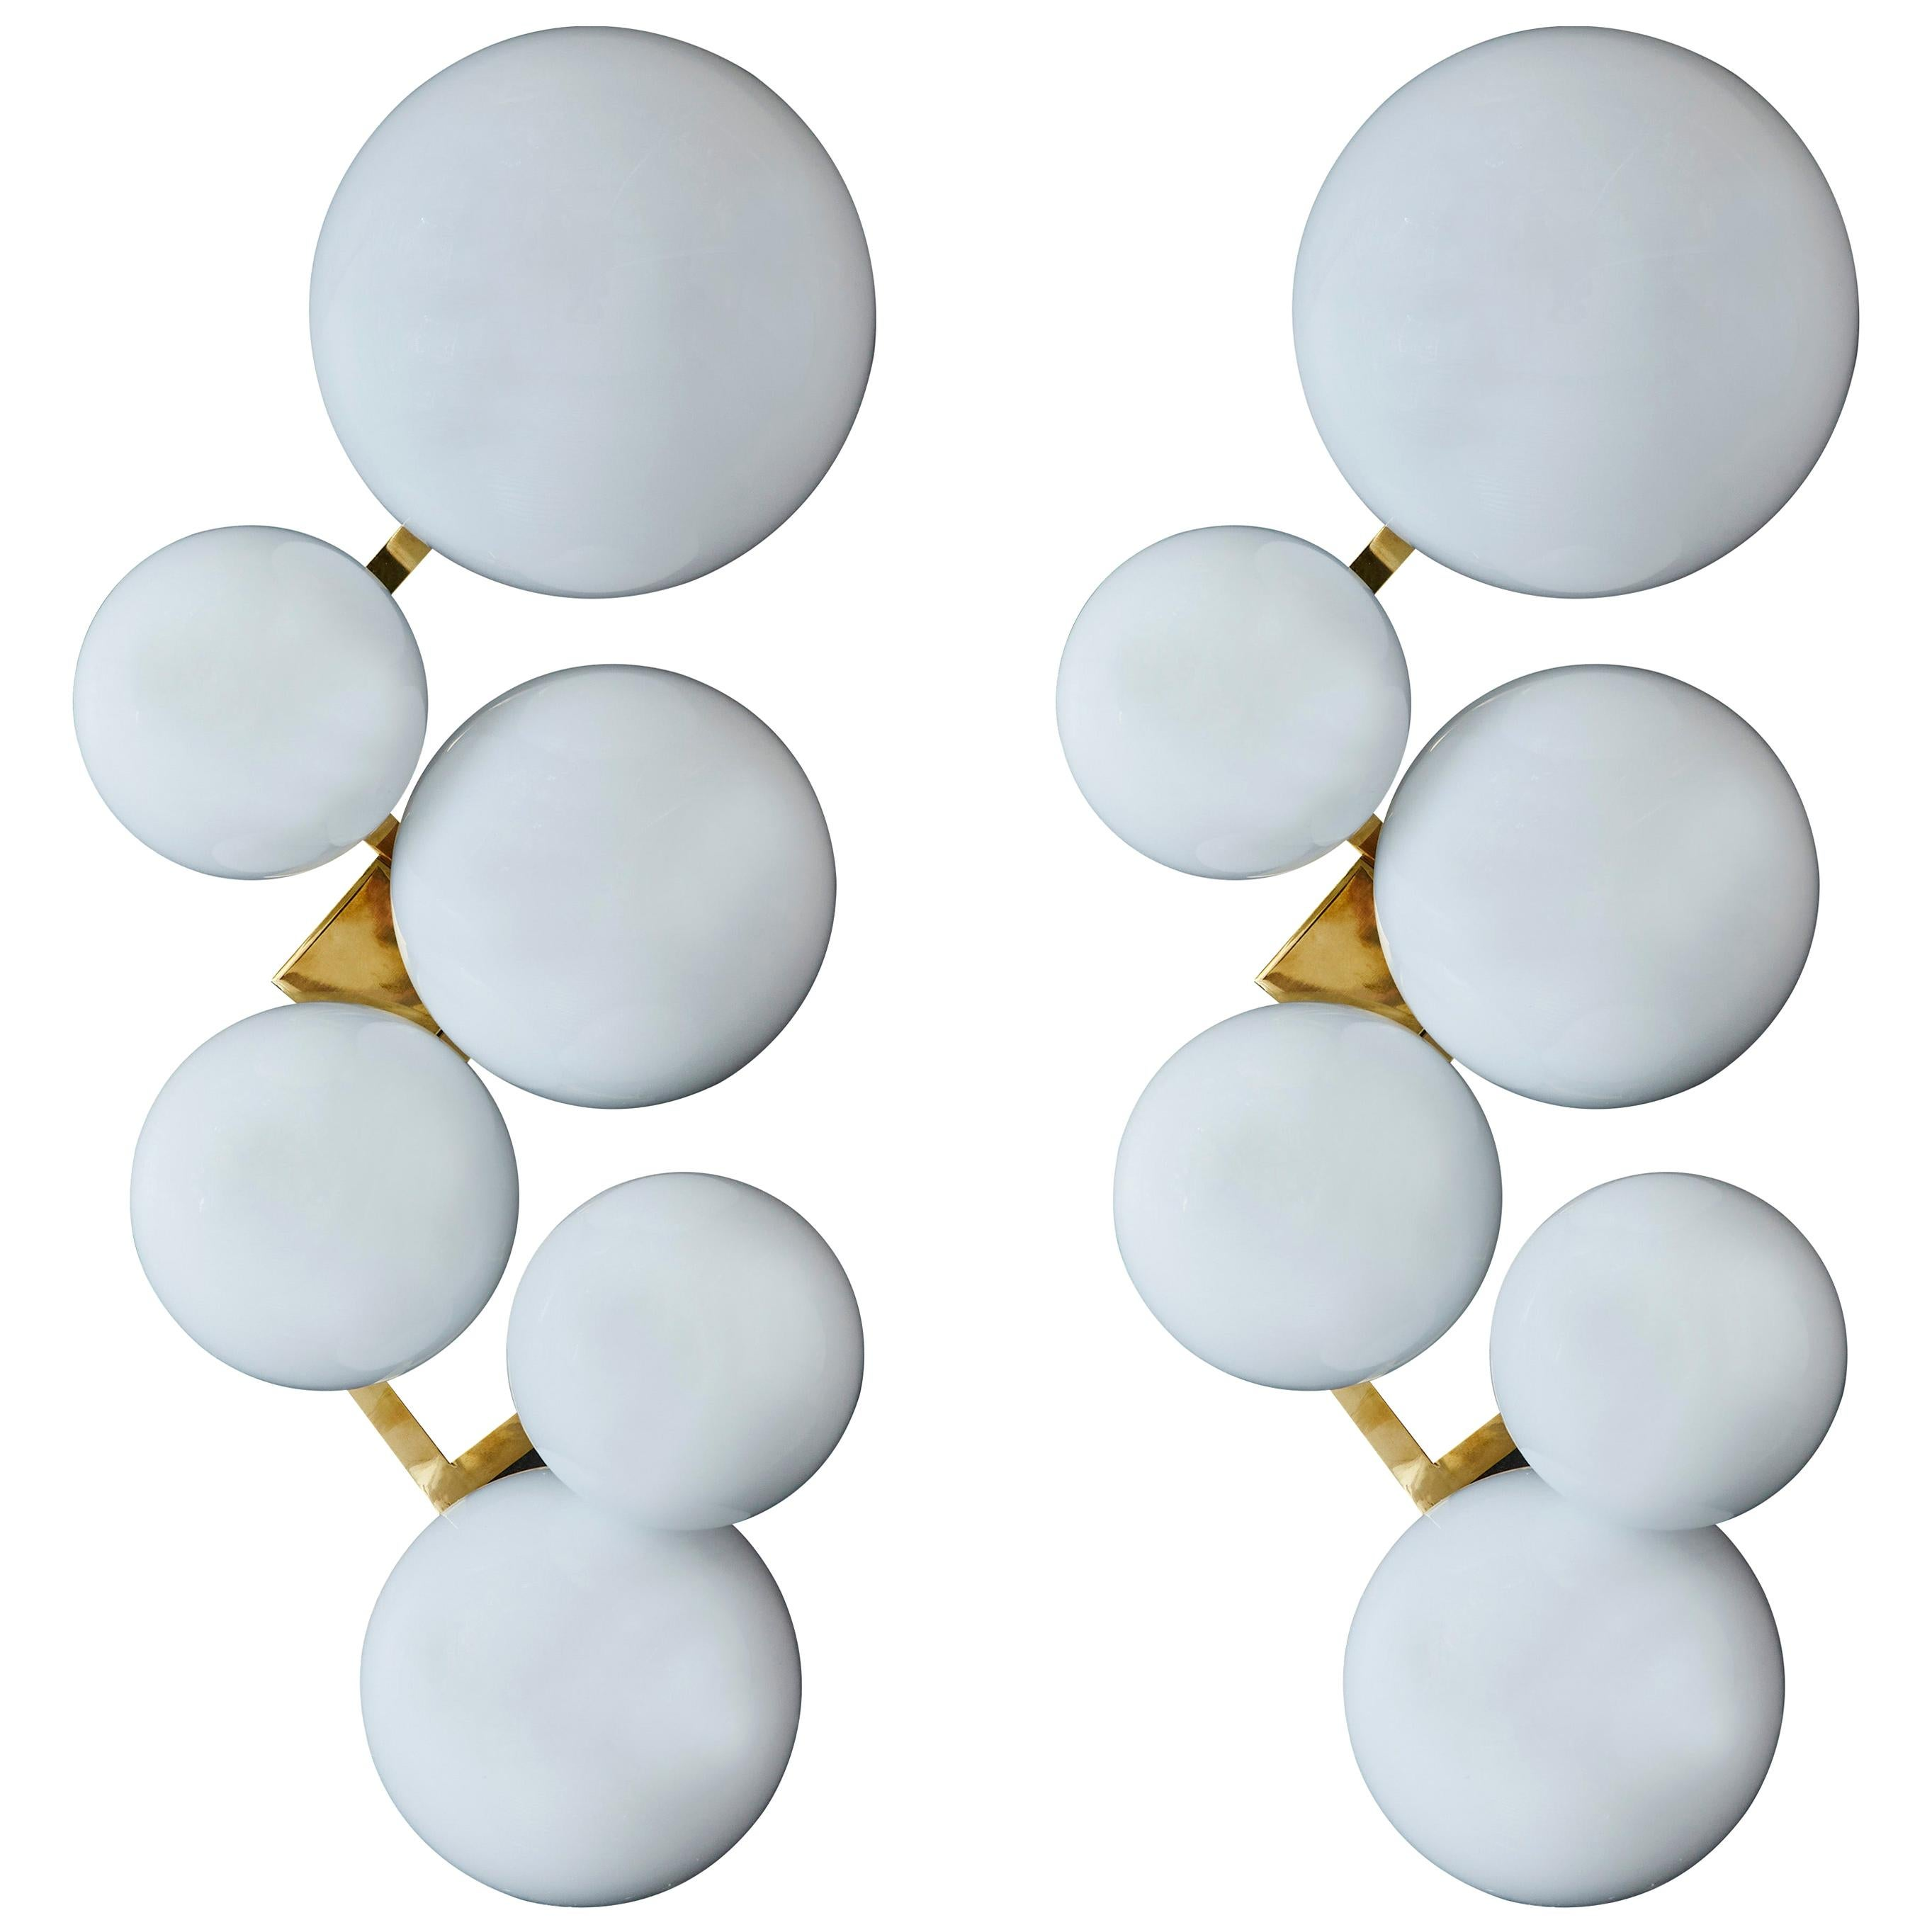 Pair of Brass Wall Sconces with Different Sized White Glass Globes